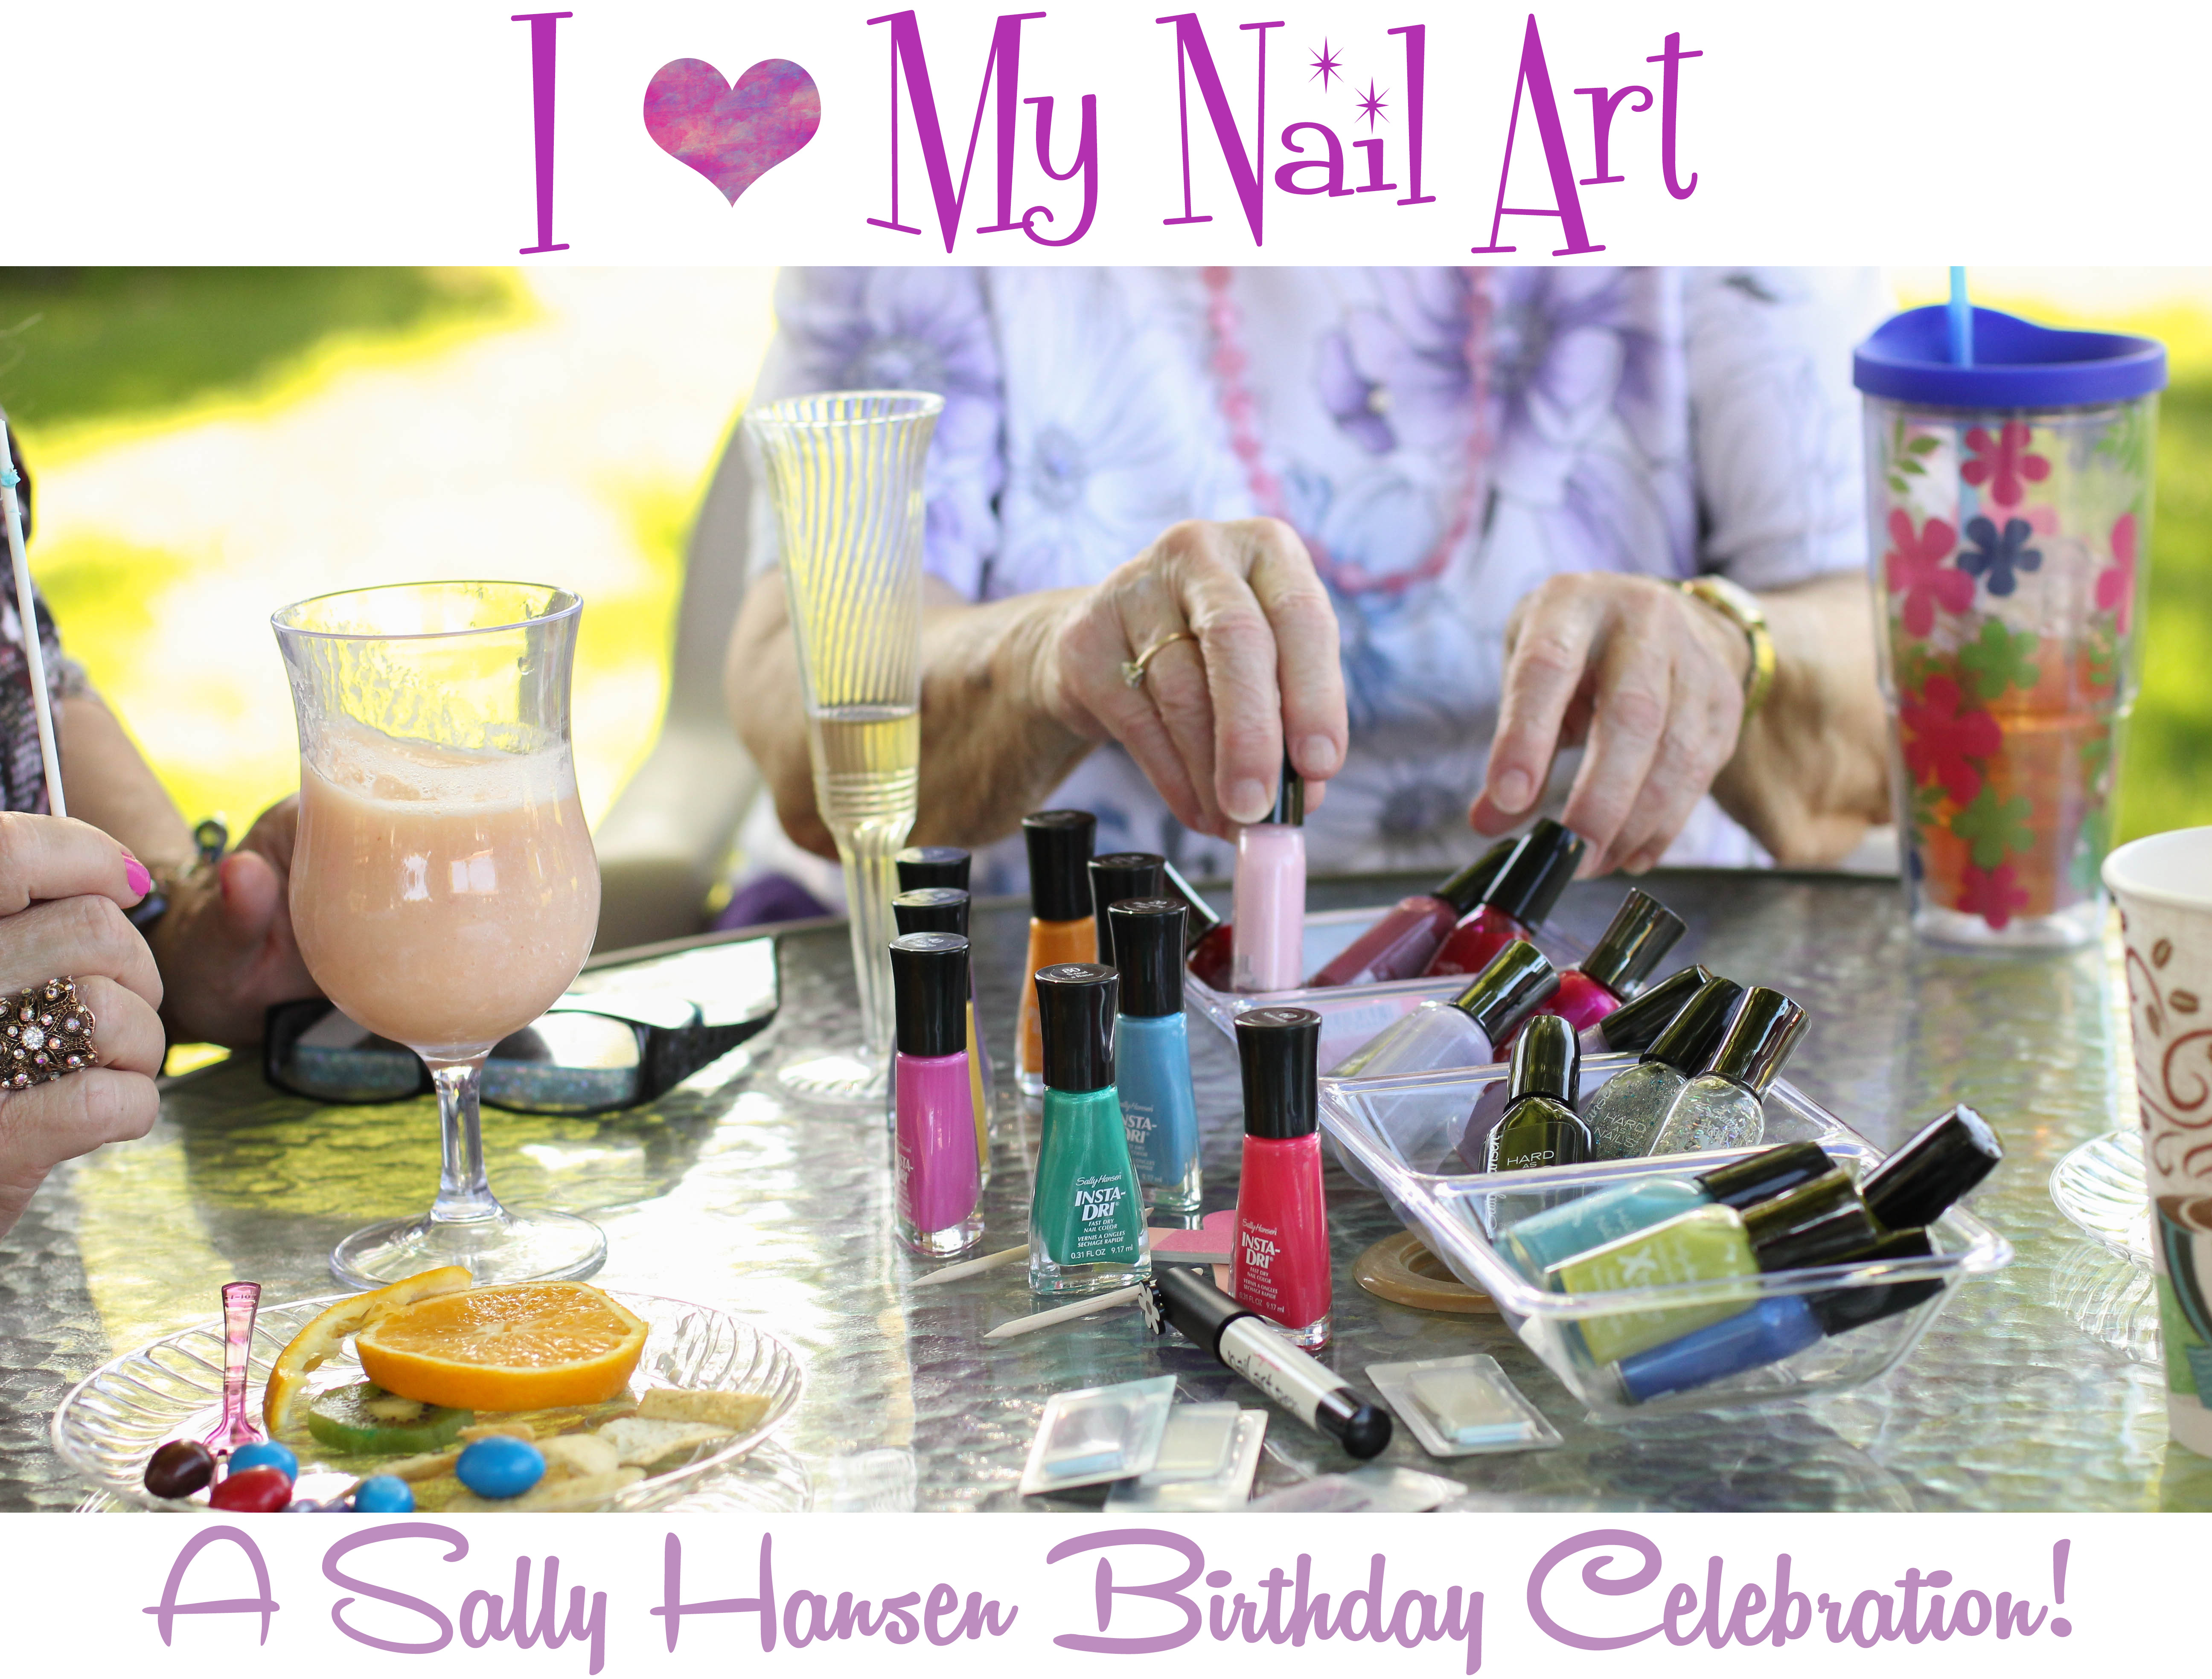 A Sally Hansen Birthday Celebration